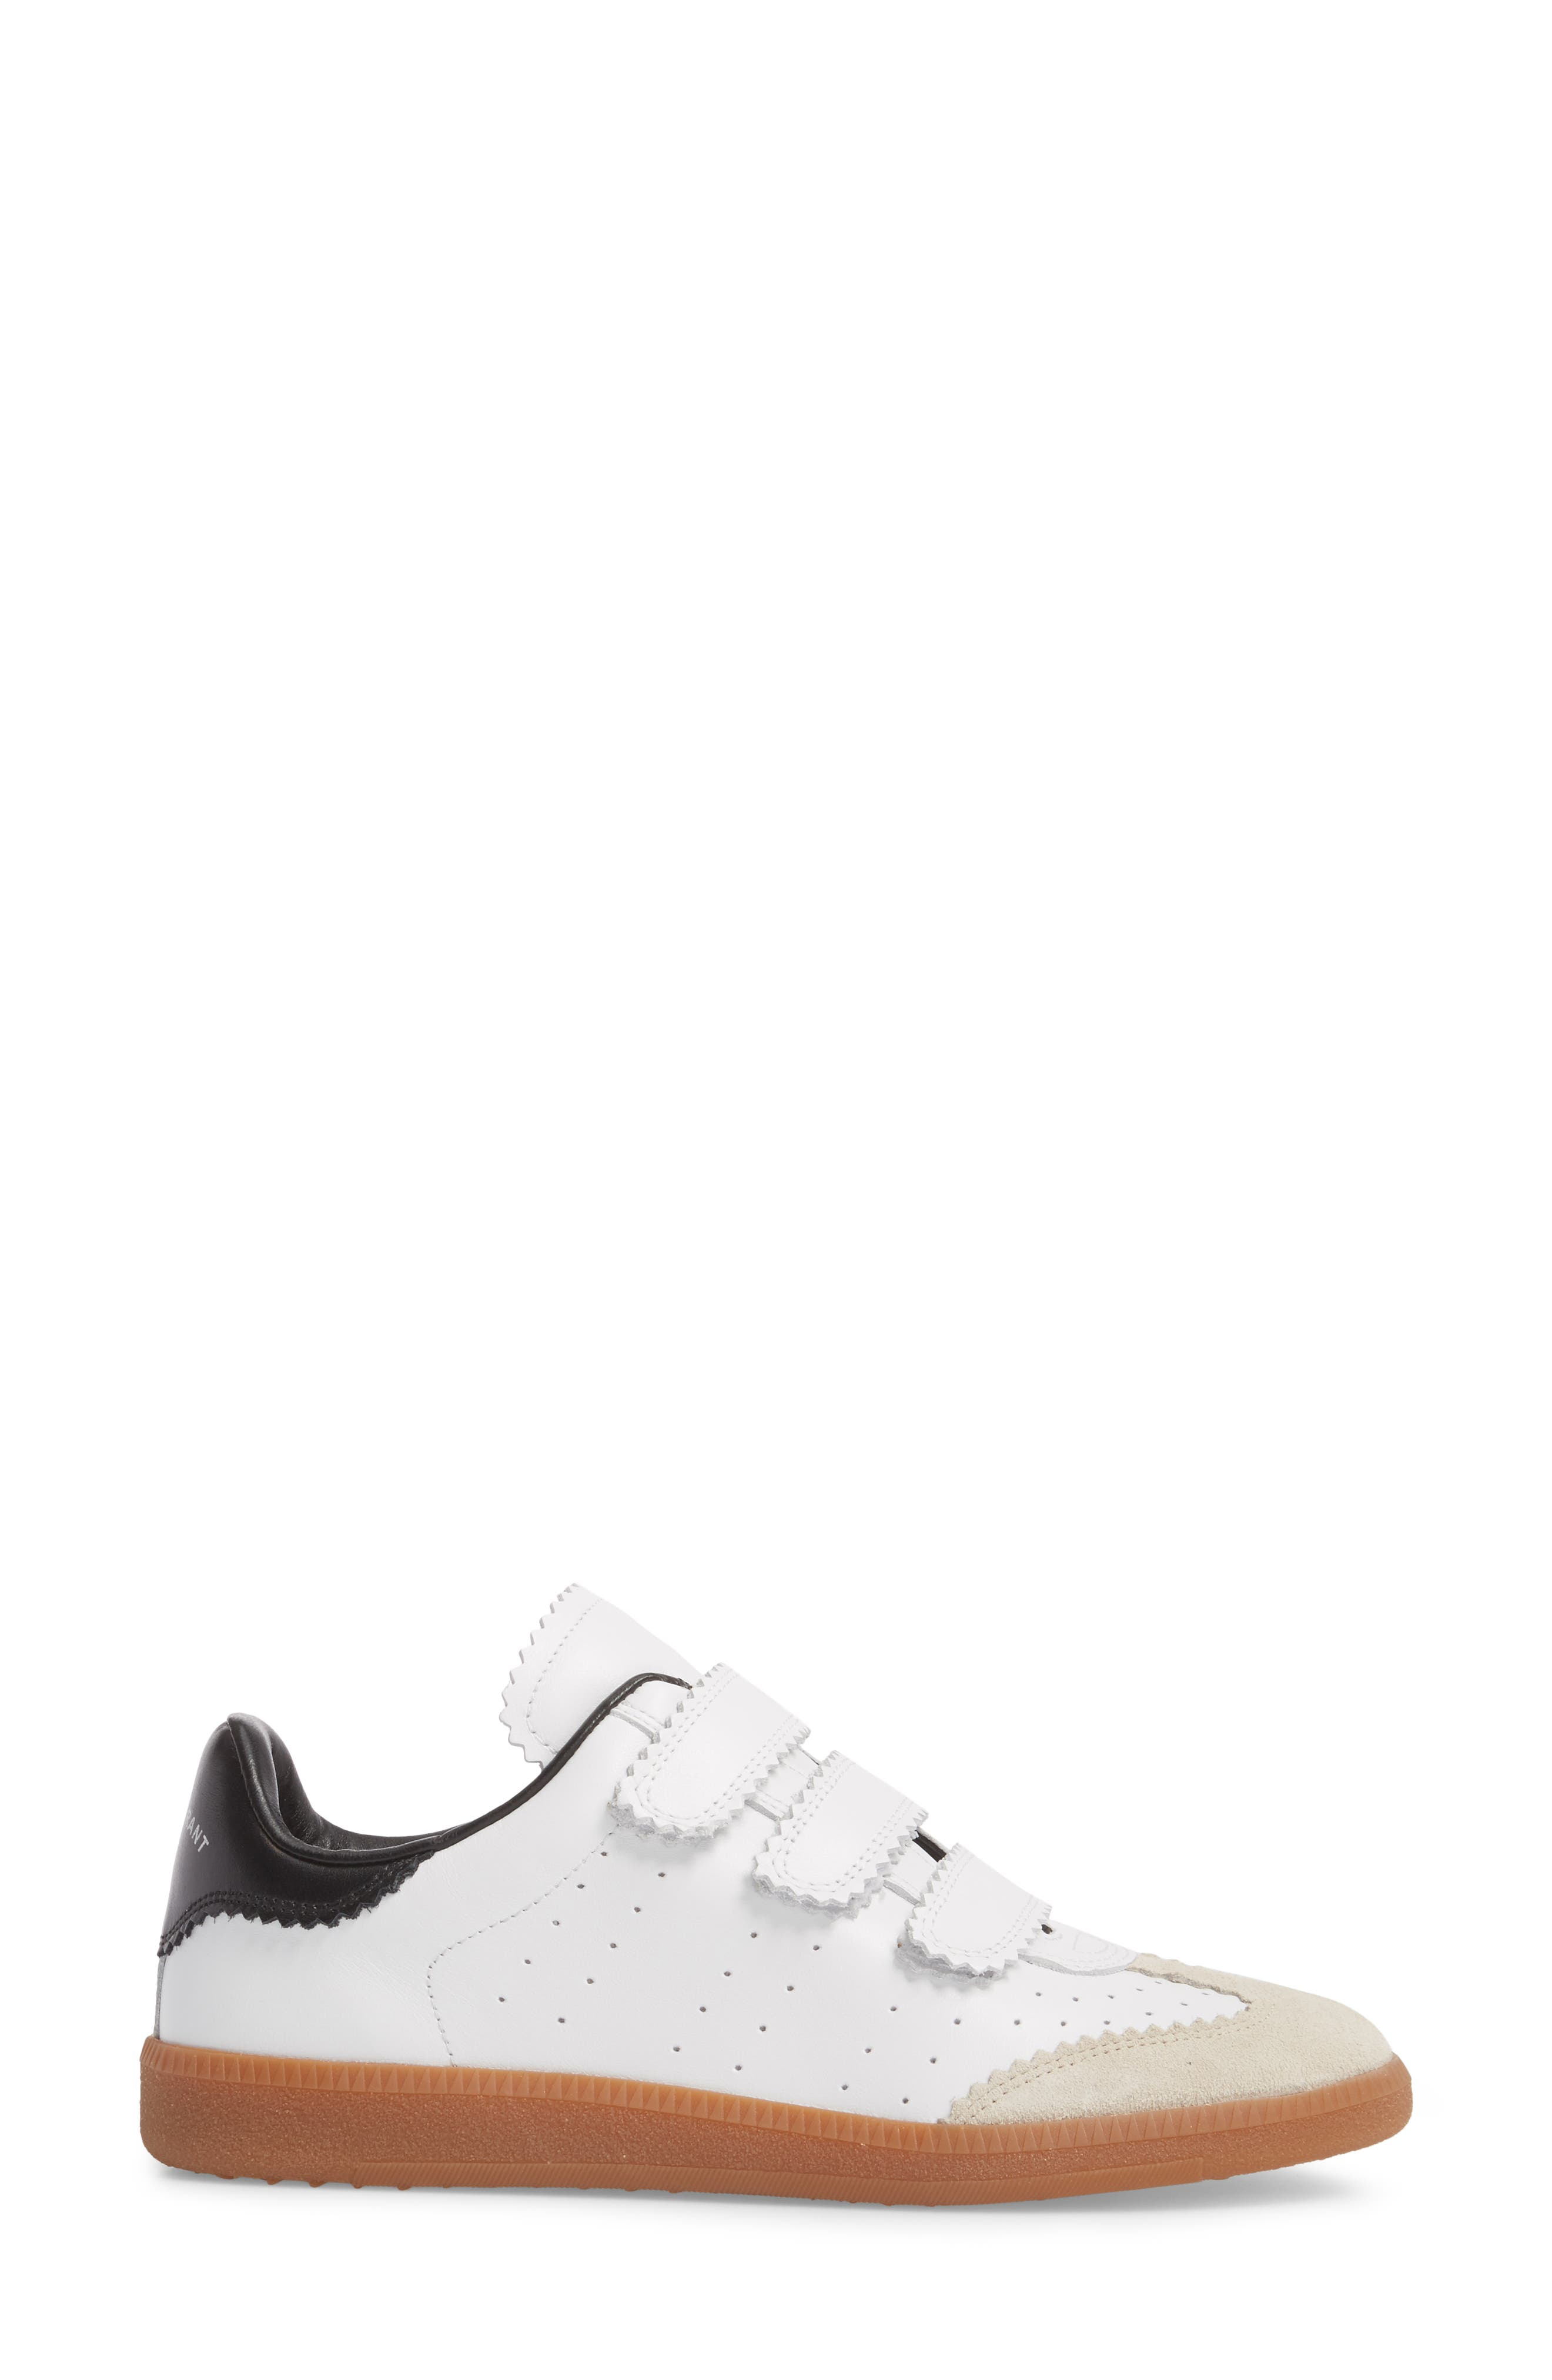 Isabel Marant Beth Low Top Sneaker,                             Alternate thumbnail 3, color,                             White